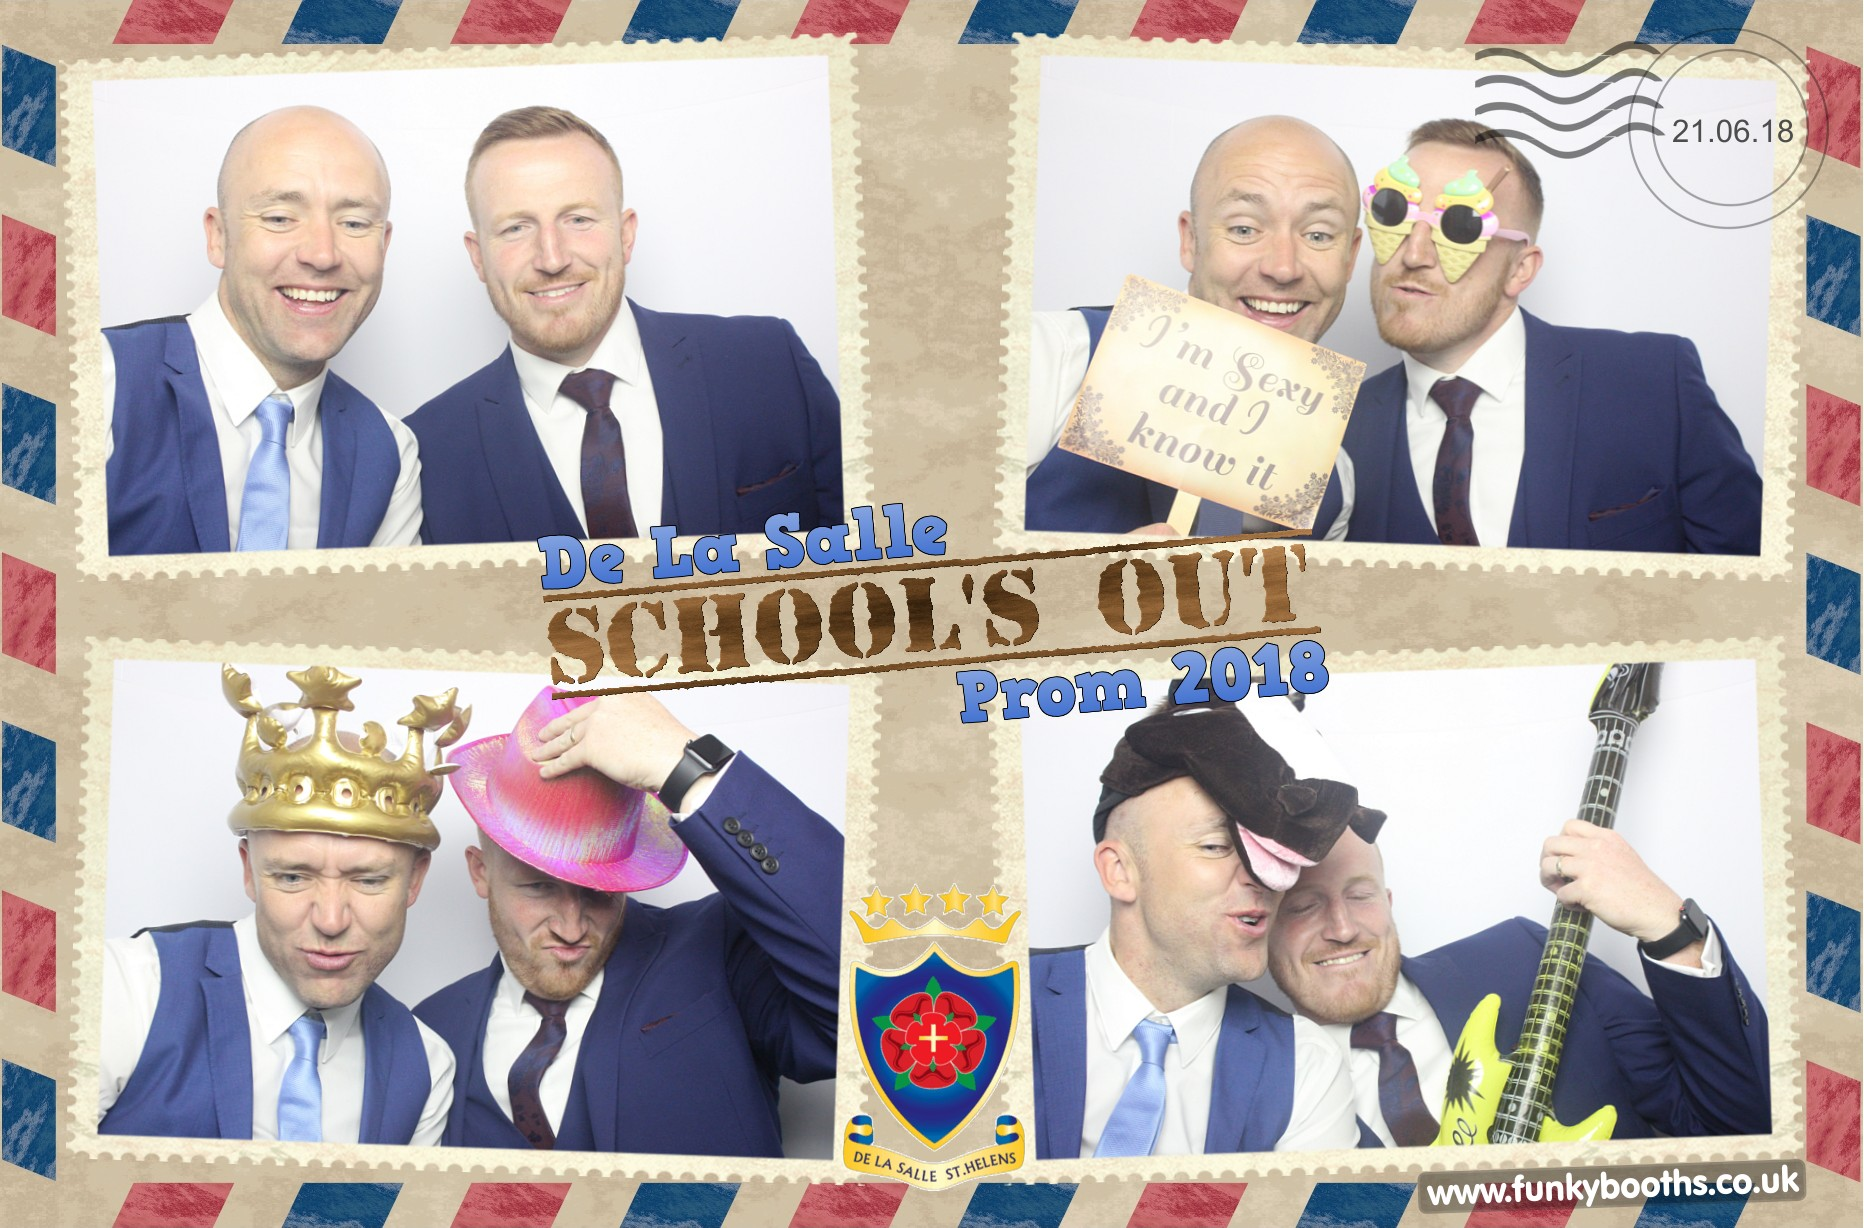 De La Salle High School Prom Photo Booth - FunkyBooths co uk